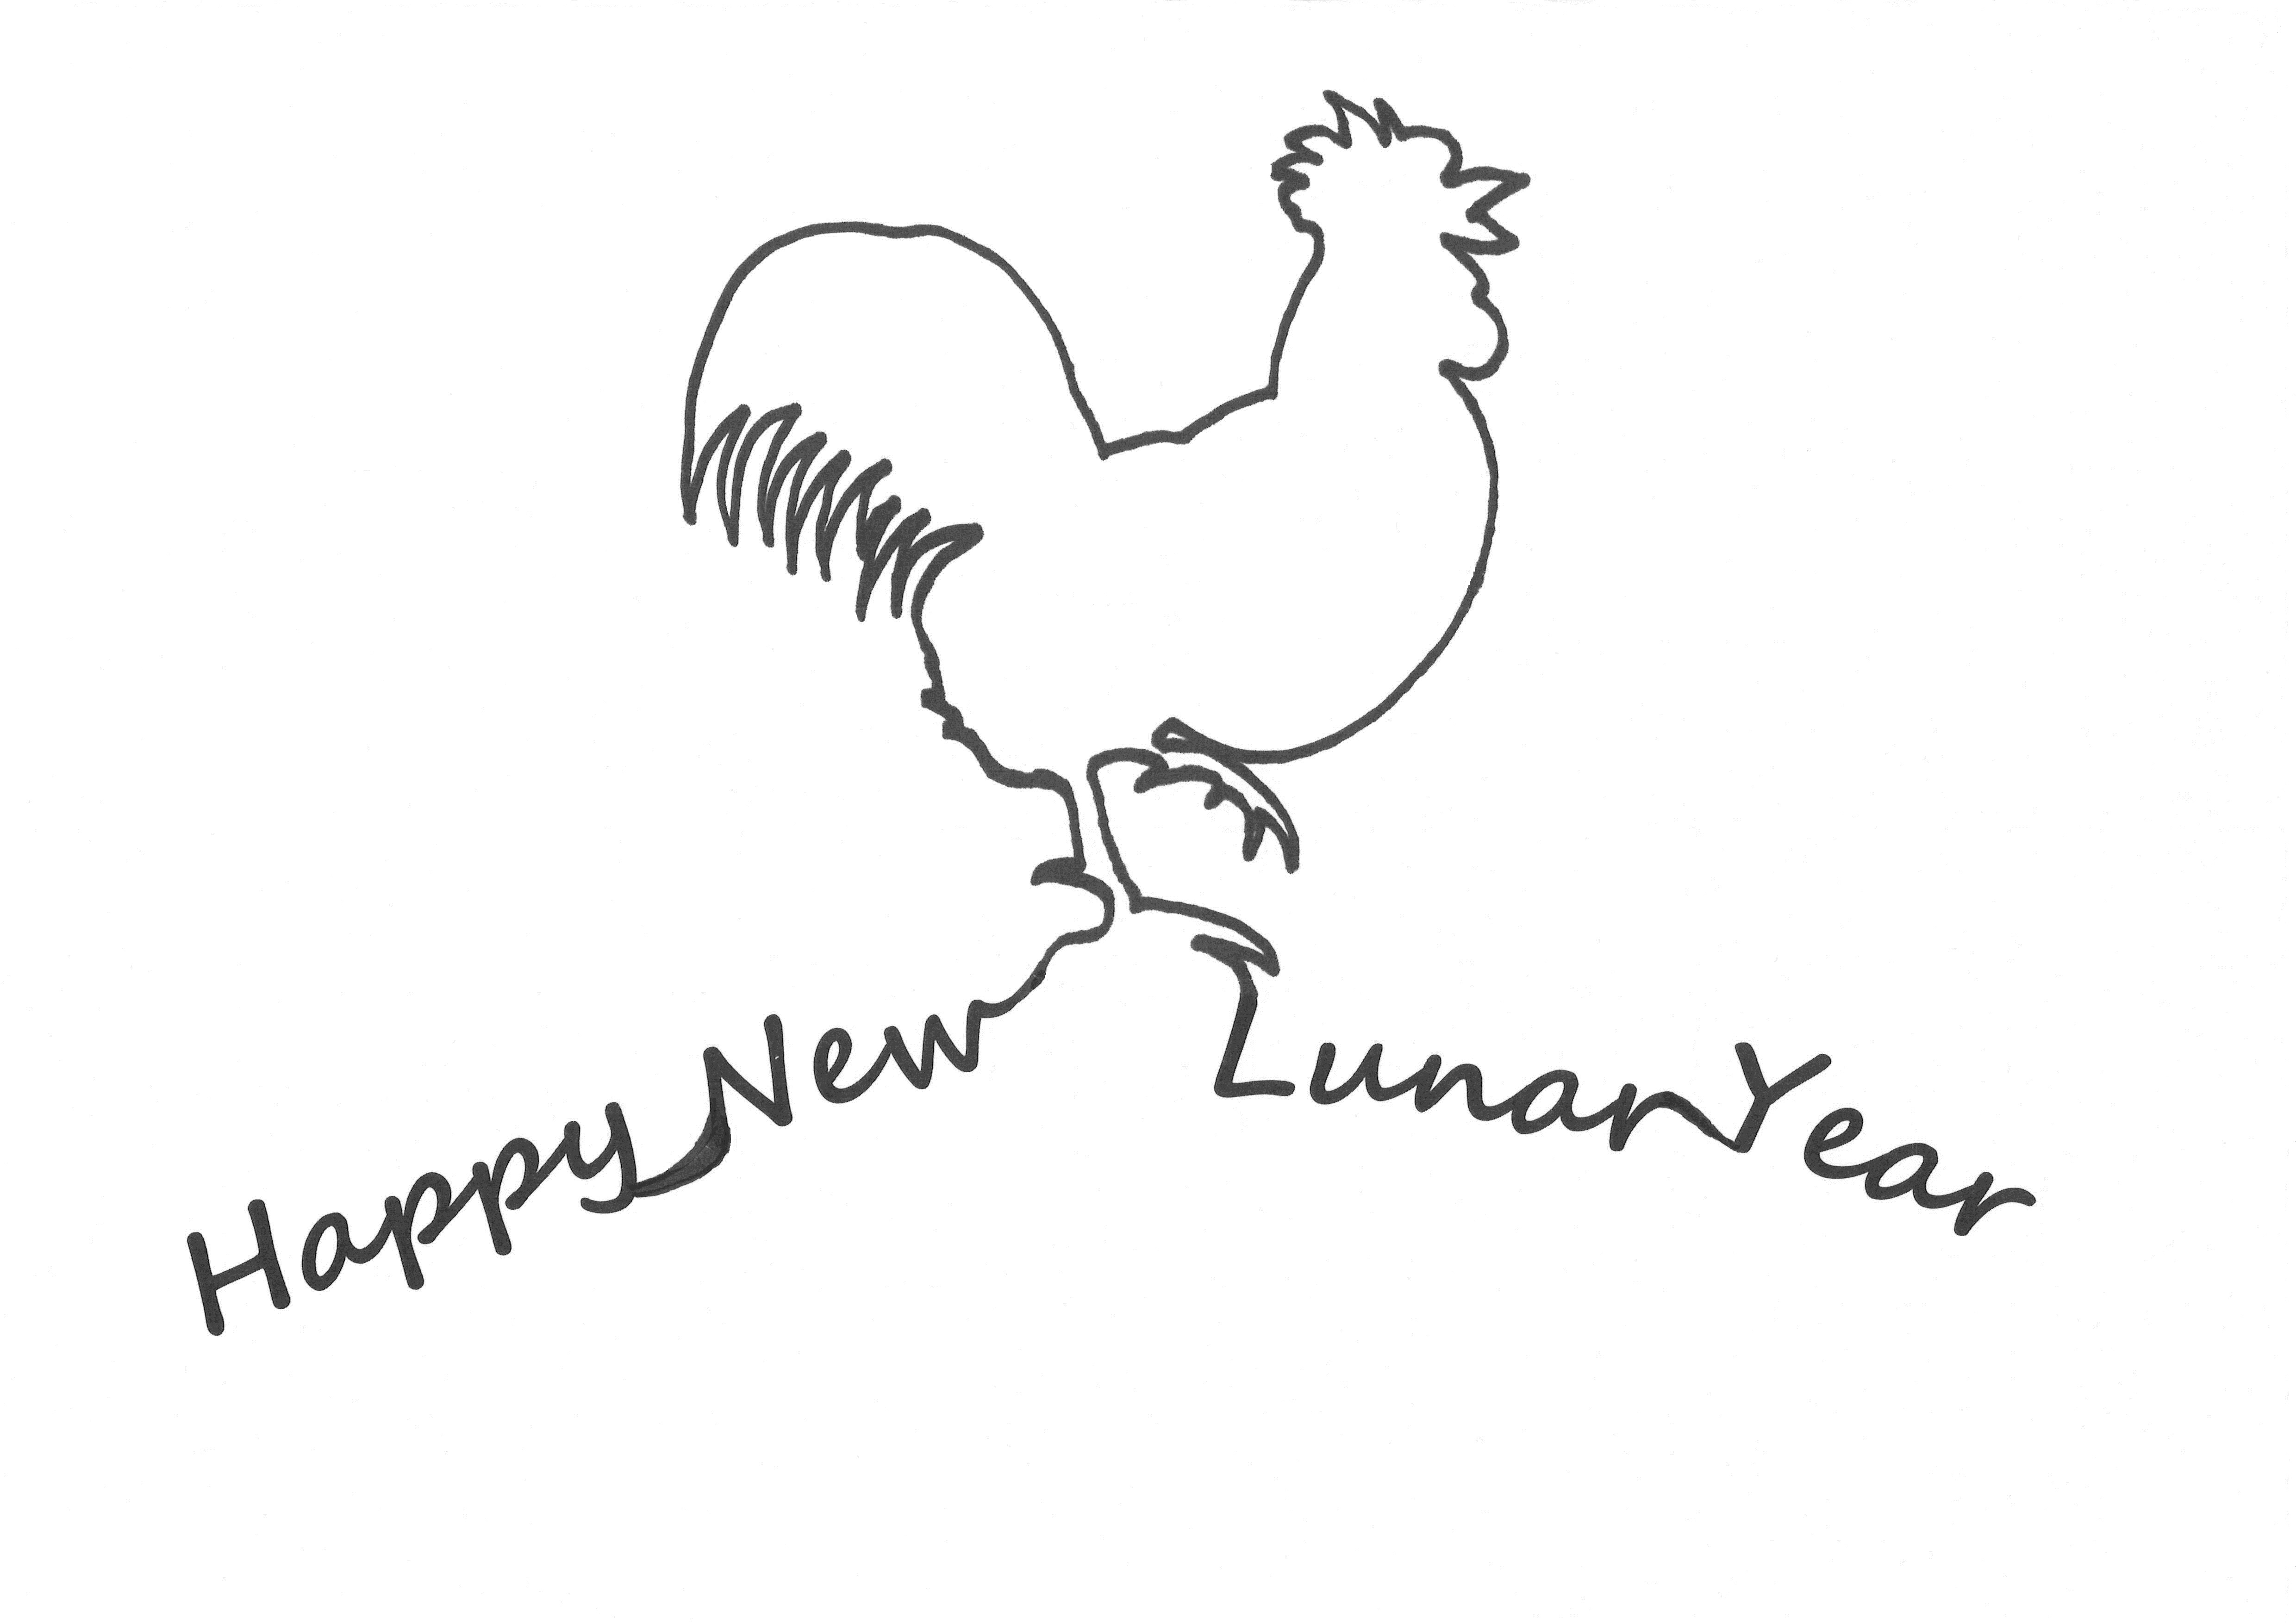 Enjoy the year of the rooster. Happy New Lunar Year from NANOSENSORS the world leader in scanning probes